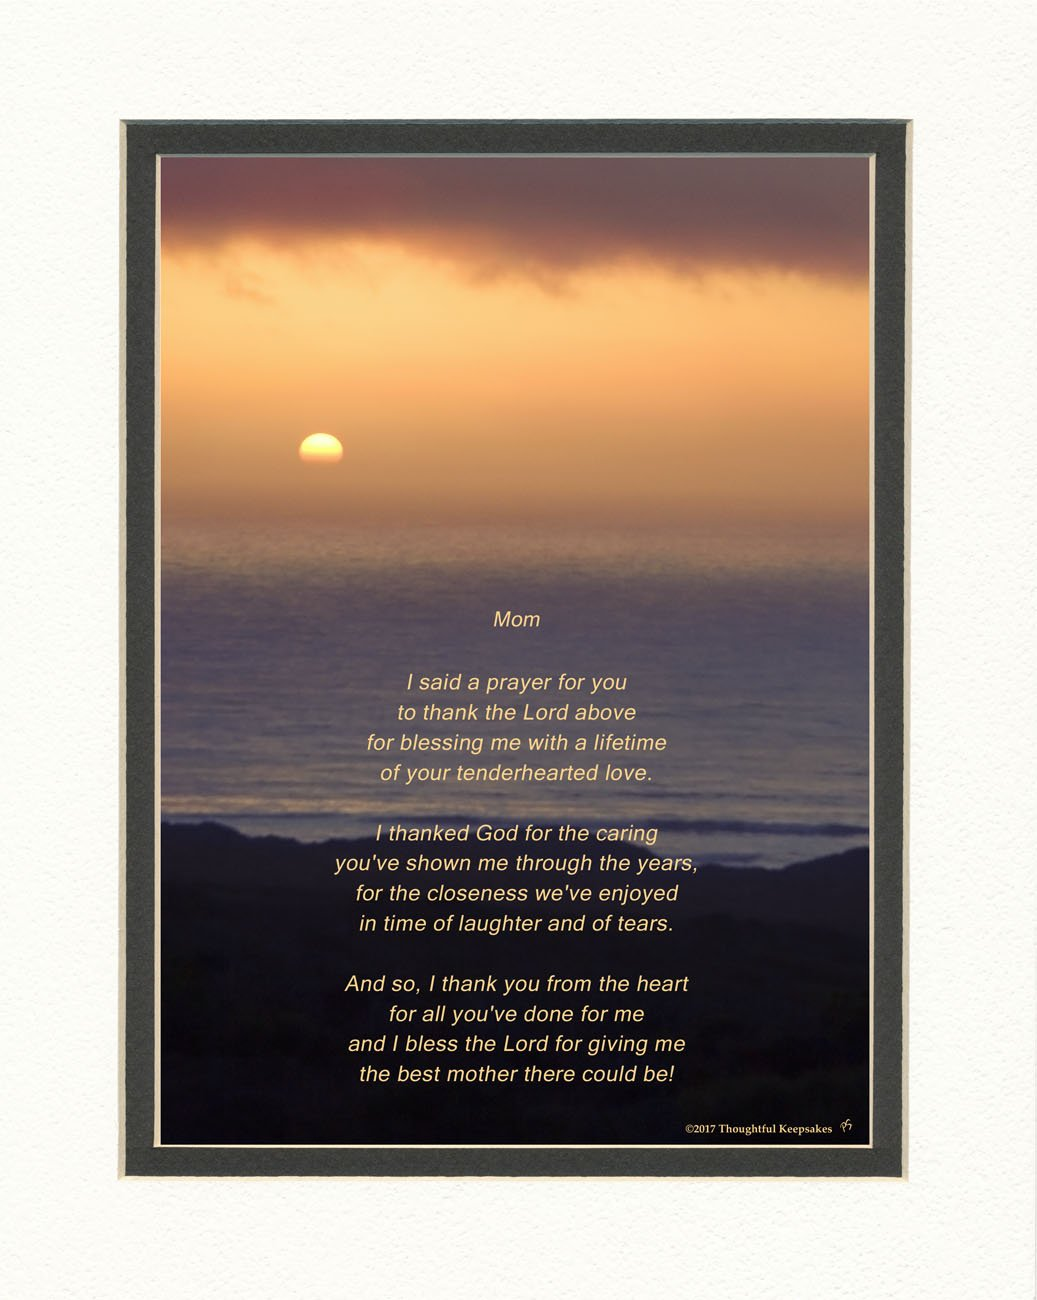 Mom - Mother Gifts Mom Gift with Thank You Prayer for Best Mom Poem. Ocean Sunset Photo, 8x10 Double Matted for for Birthday, Christmas, Wedding or